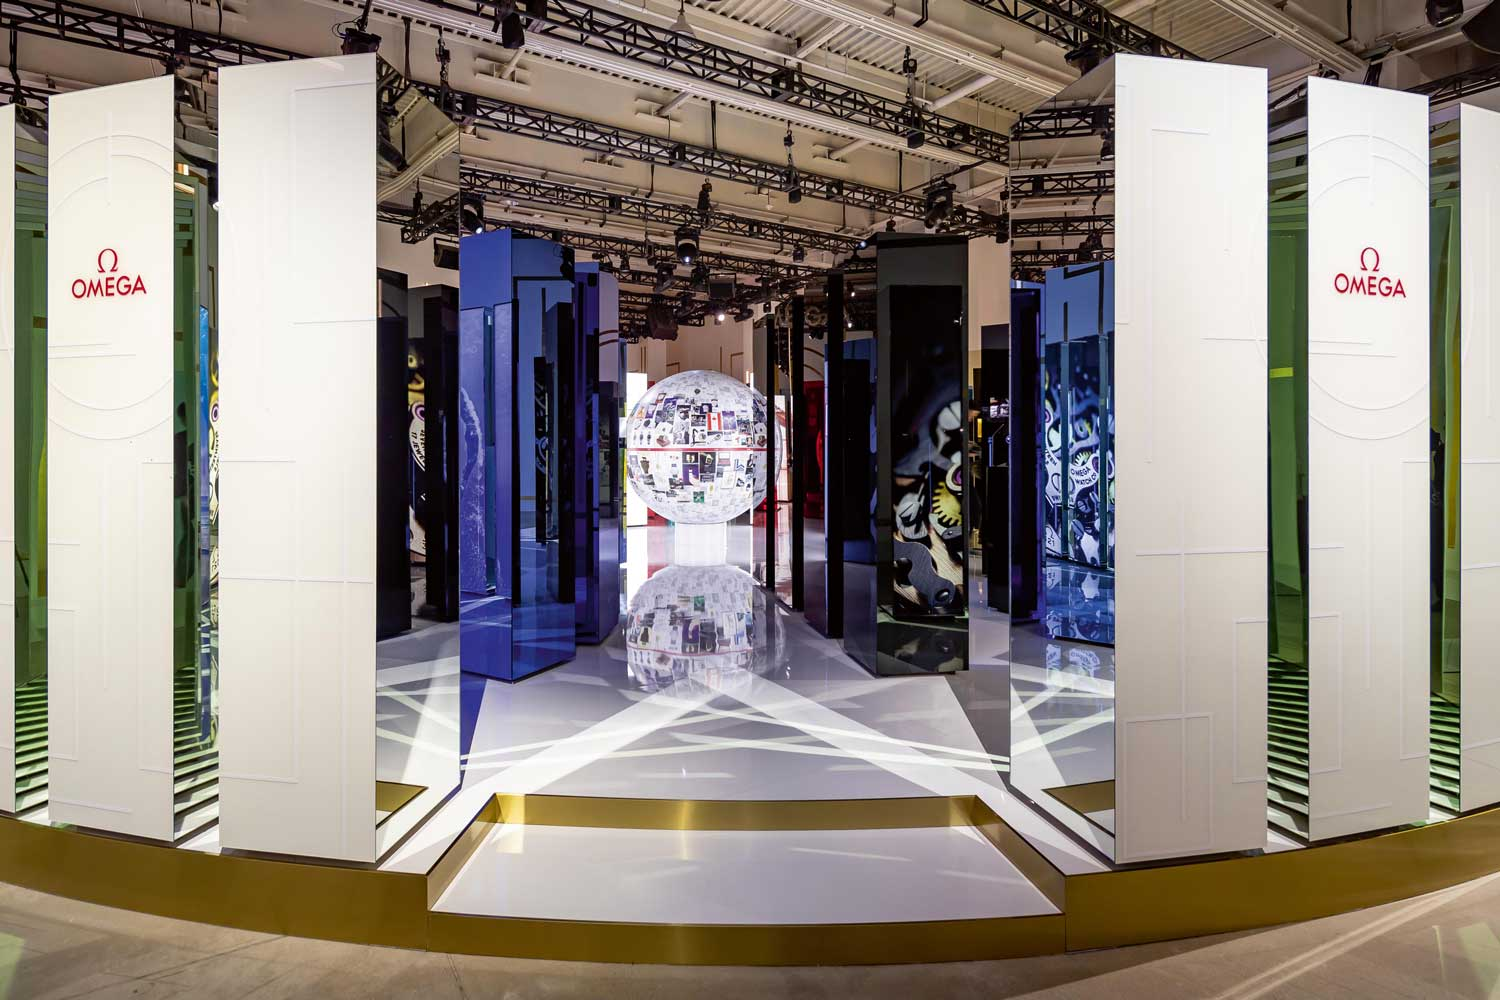 Omega's recent Planet Omega exhibition in Shanghai embraces the future